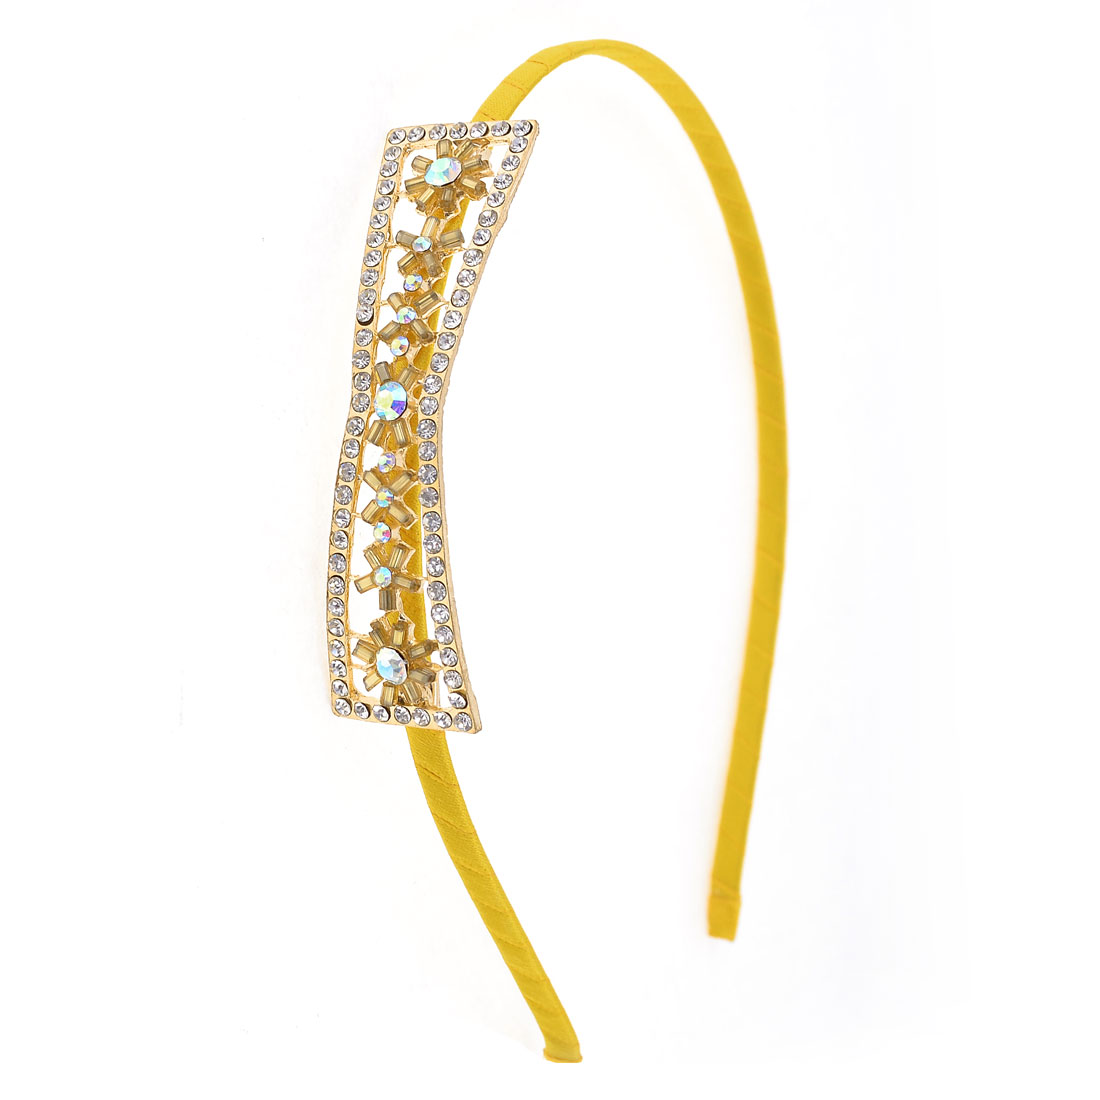 Rhinestone Inlaid Bowknot Decor Hair Hoop Yellow for Lady